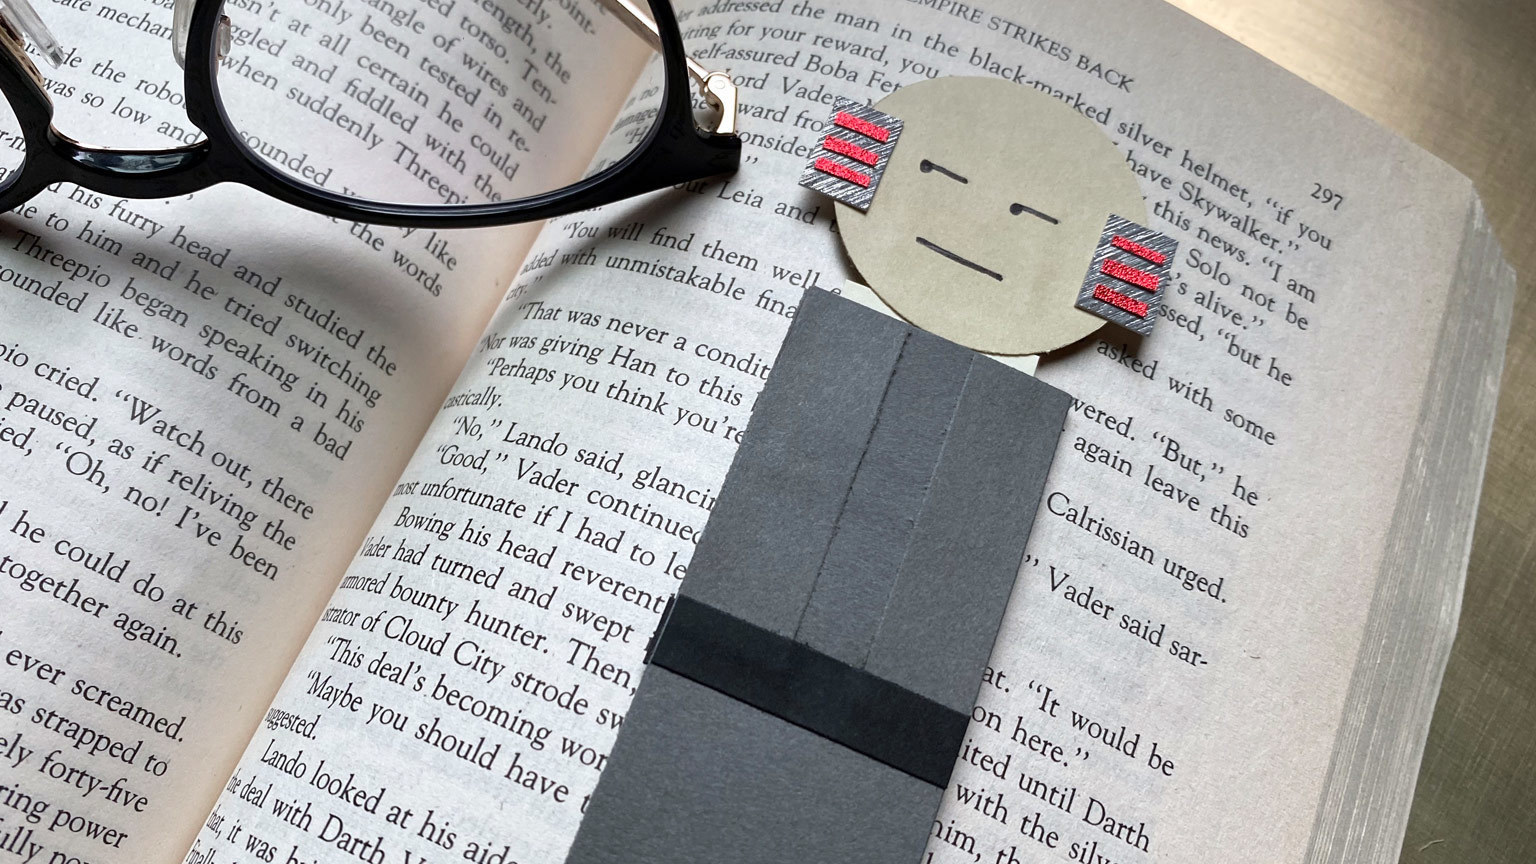 Empire at 40 | Save Your Spot With This DIY Lobot Bookmark